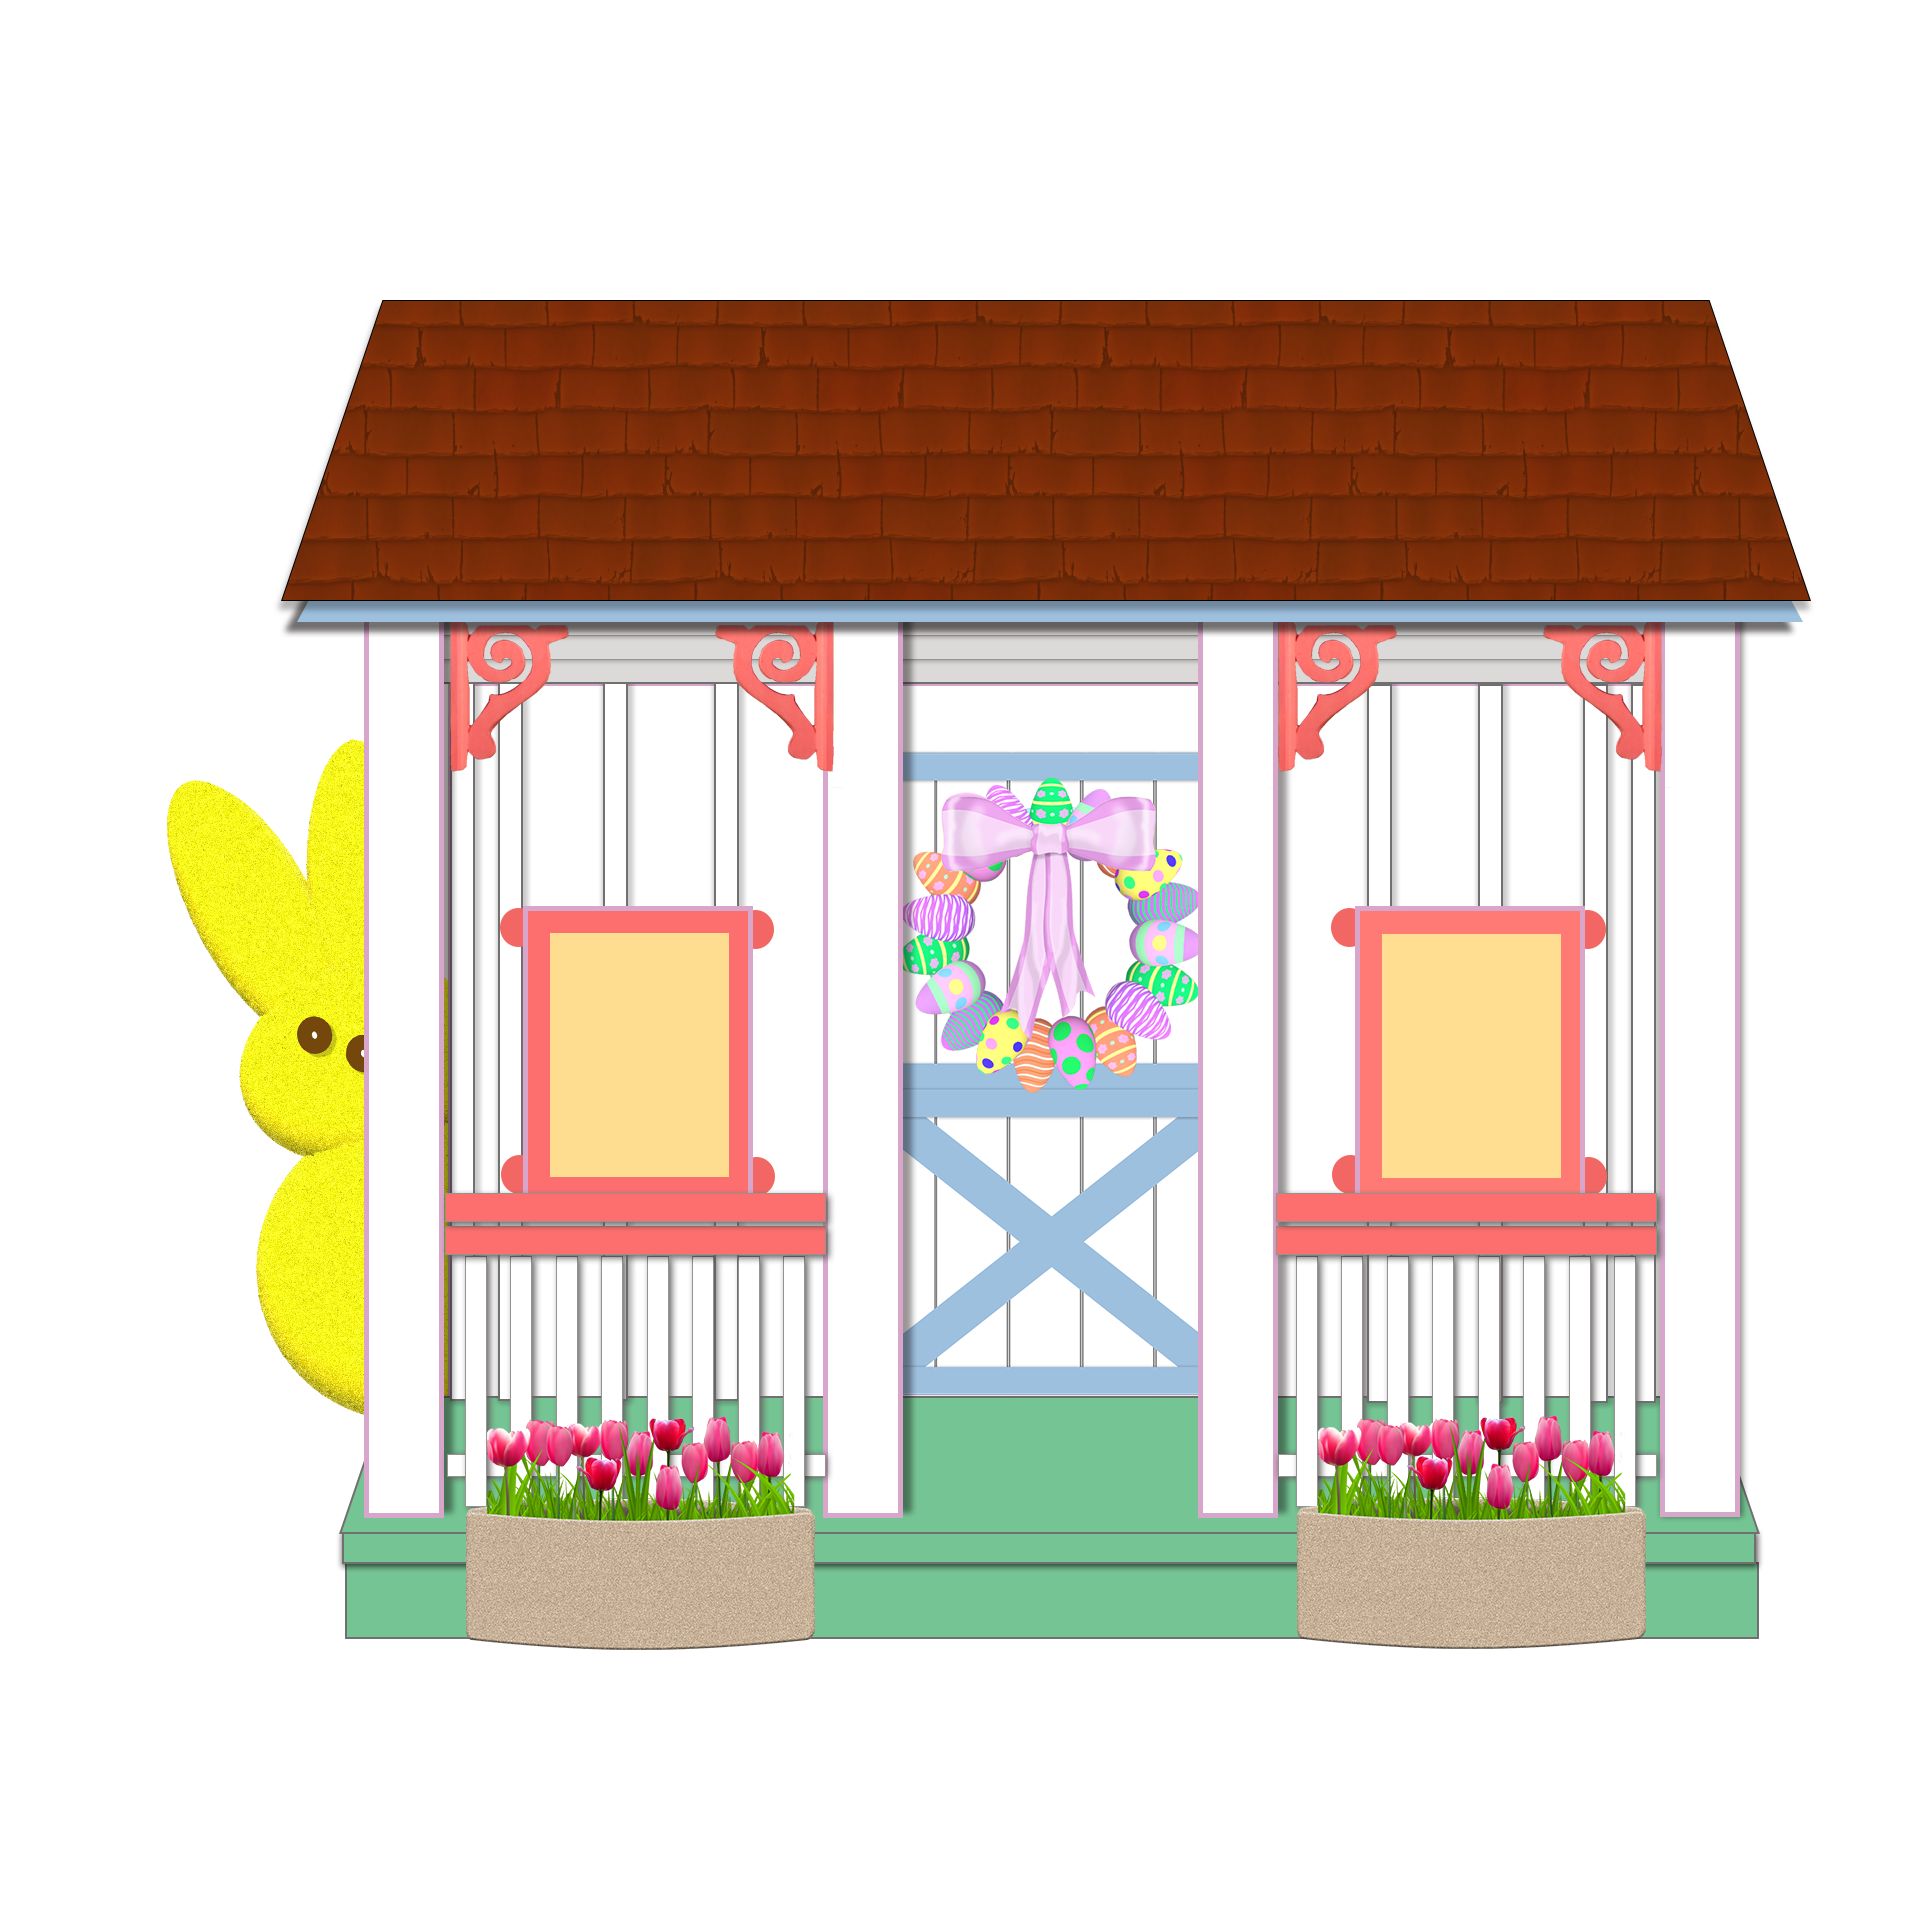 playhouse illustration with yellow peep